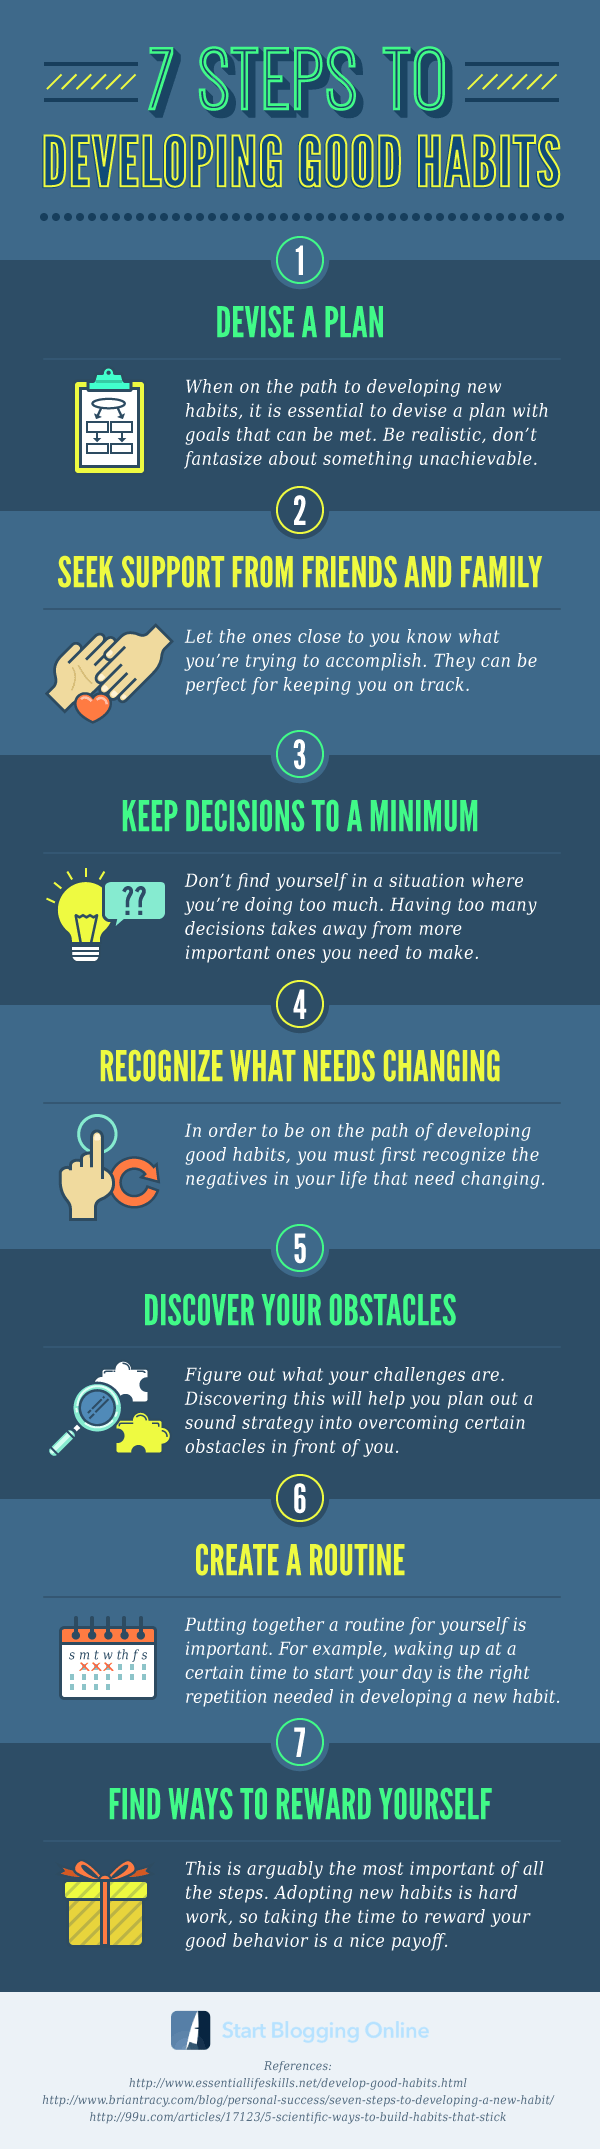 Changing Tracks: Developing Good Habits in 7 Easy Steps - Infographic